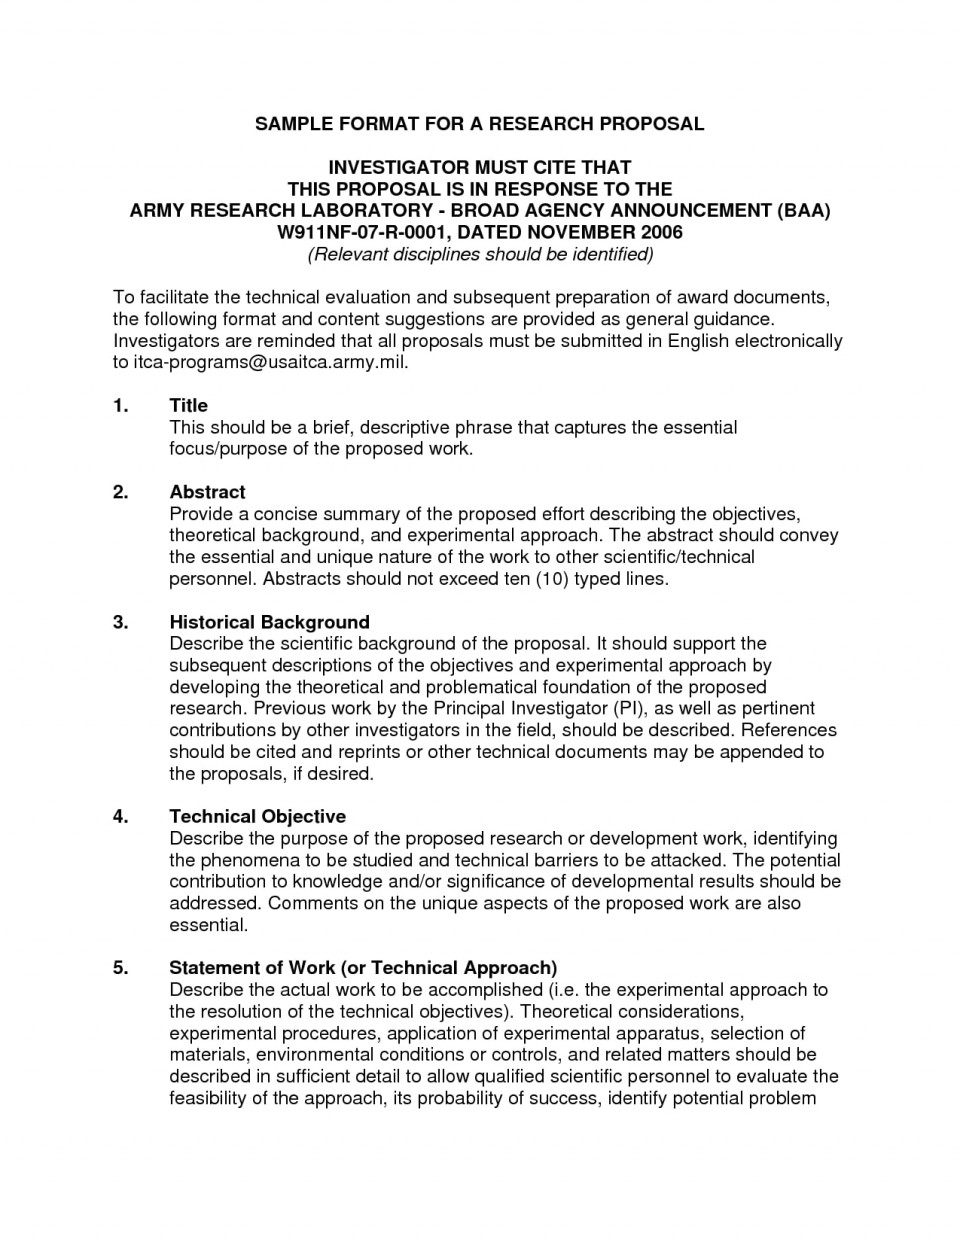 013 Research Paper Proposal Template For 6781019586 Action Sample Beautiful A Example Of Writing 960